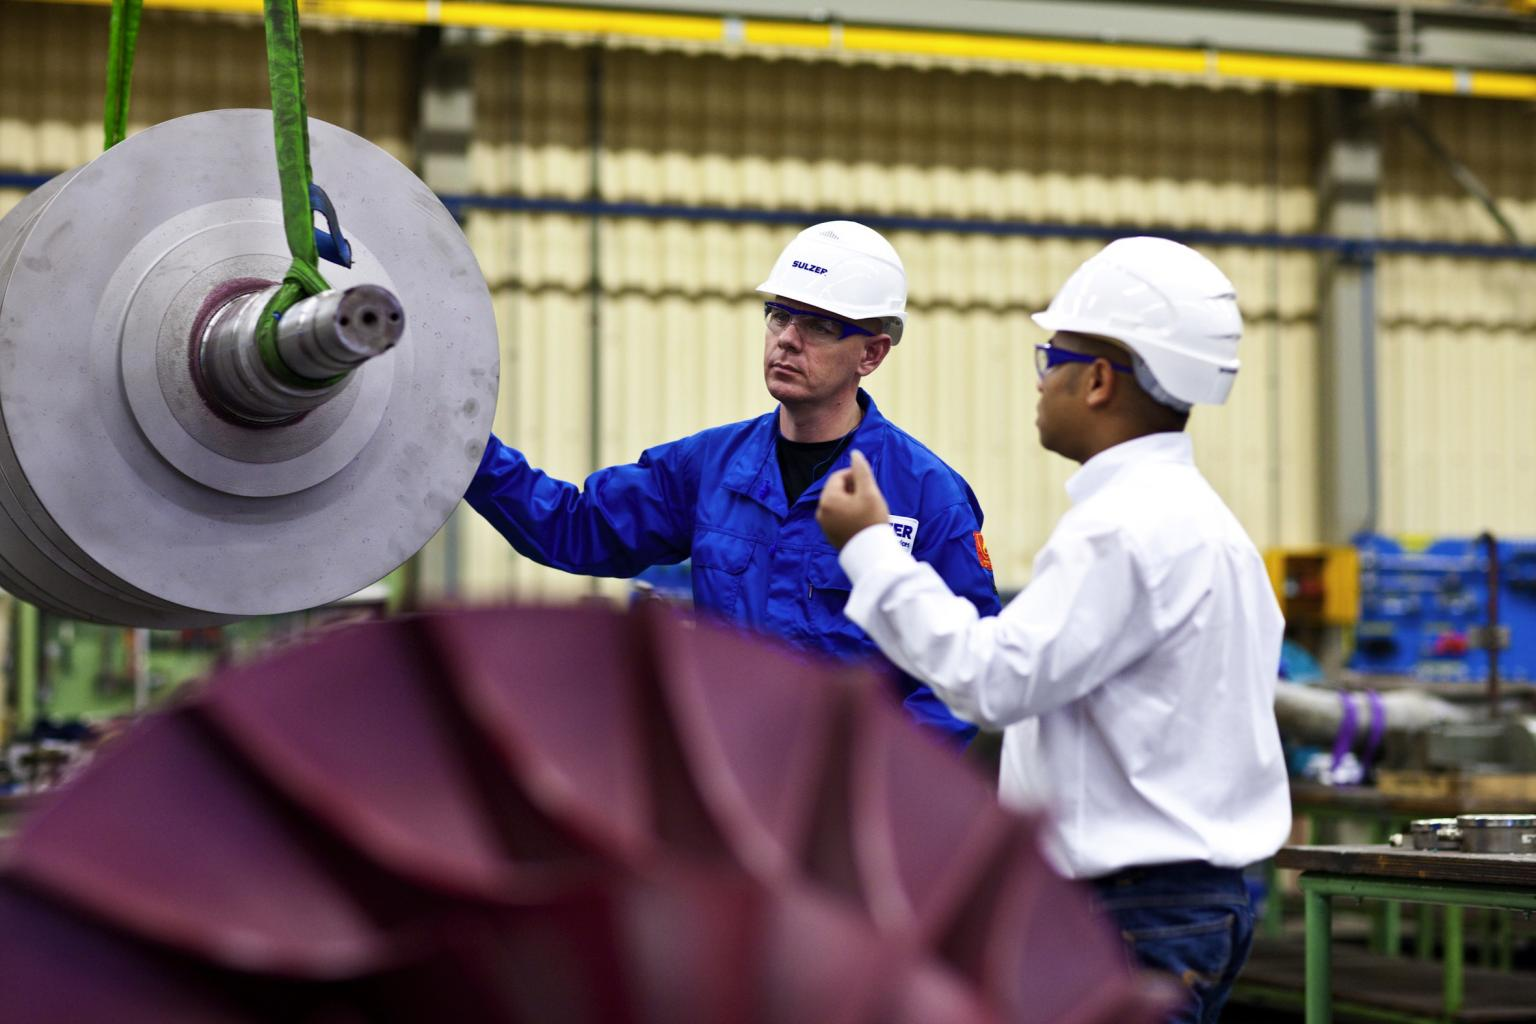 Sulzer can provide design improvements to a number of larger rotating components such as pumps, compressors, motors and generators. Image: Sulzer